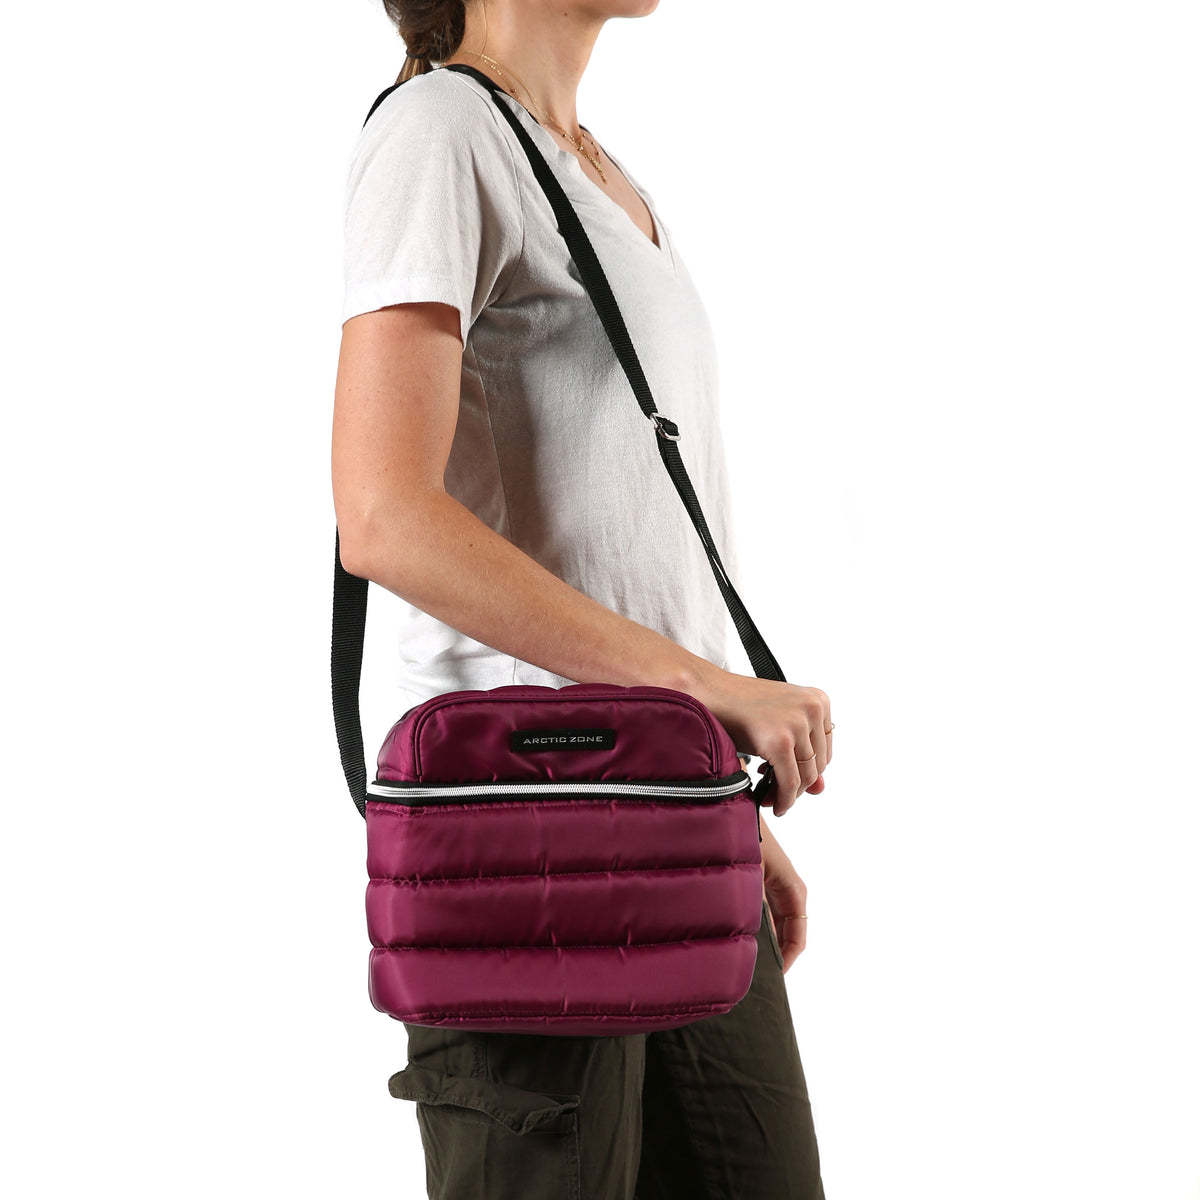 Arctic Zone® Crossbody Quilted Lunch Pack - Red Violet - Model carry